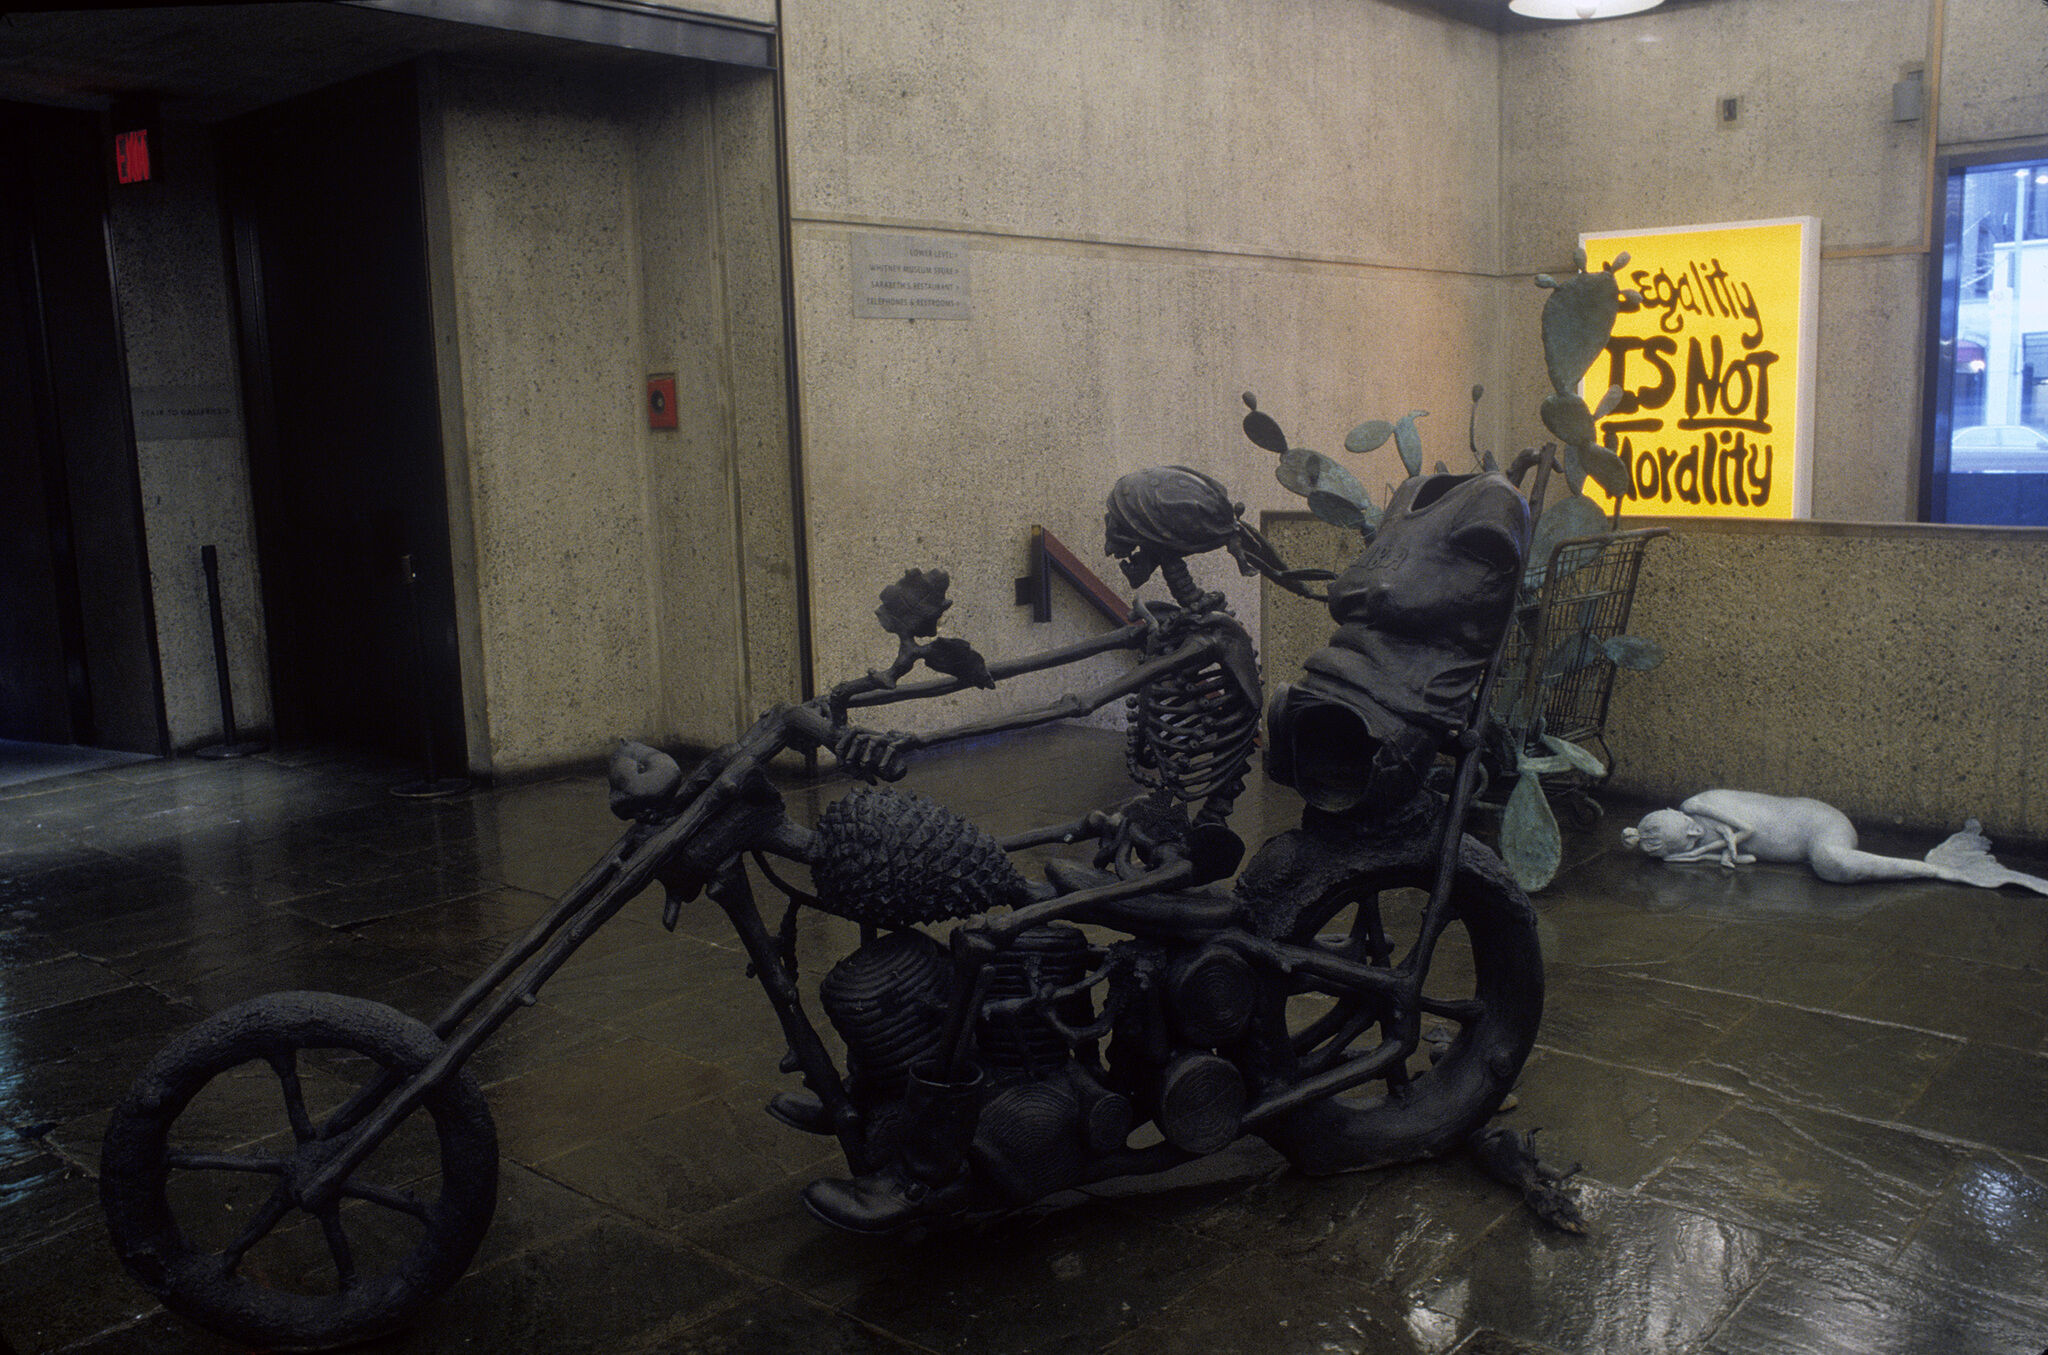 A sculpture of a skeleton on a bike.